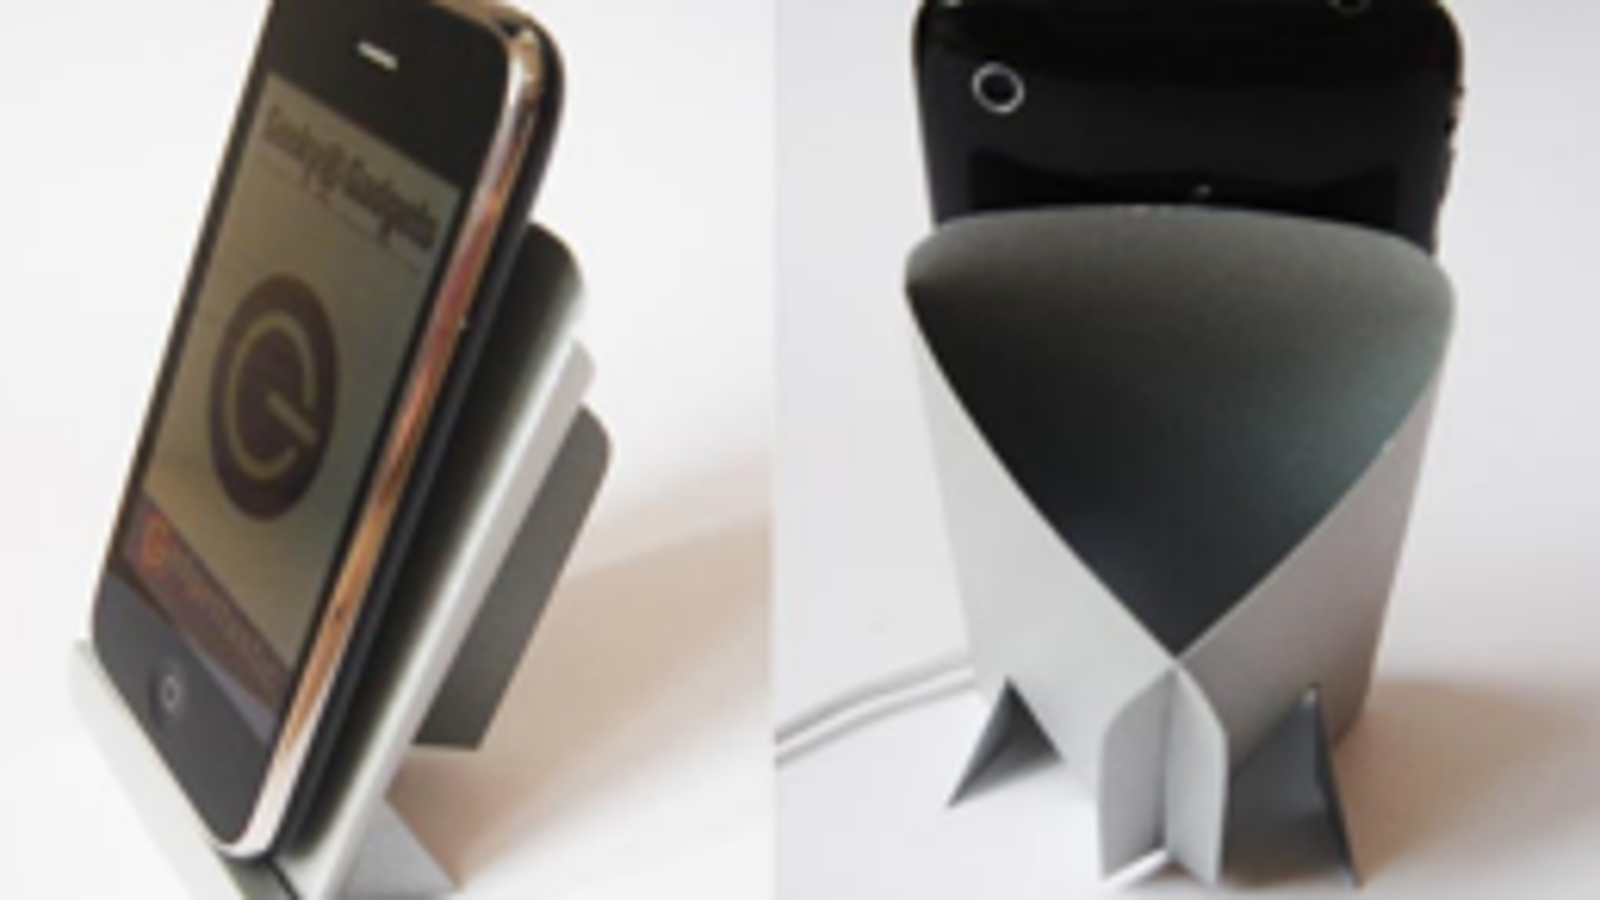 print out a cardboard iphone dock